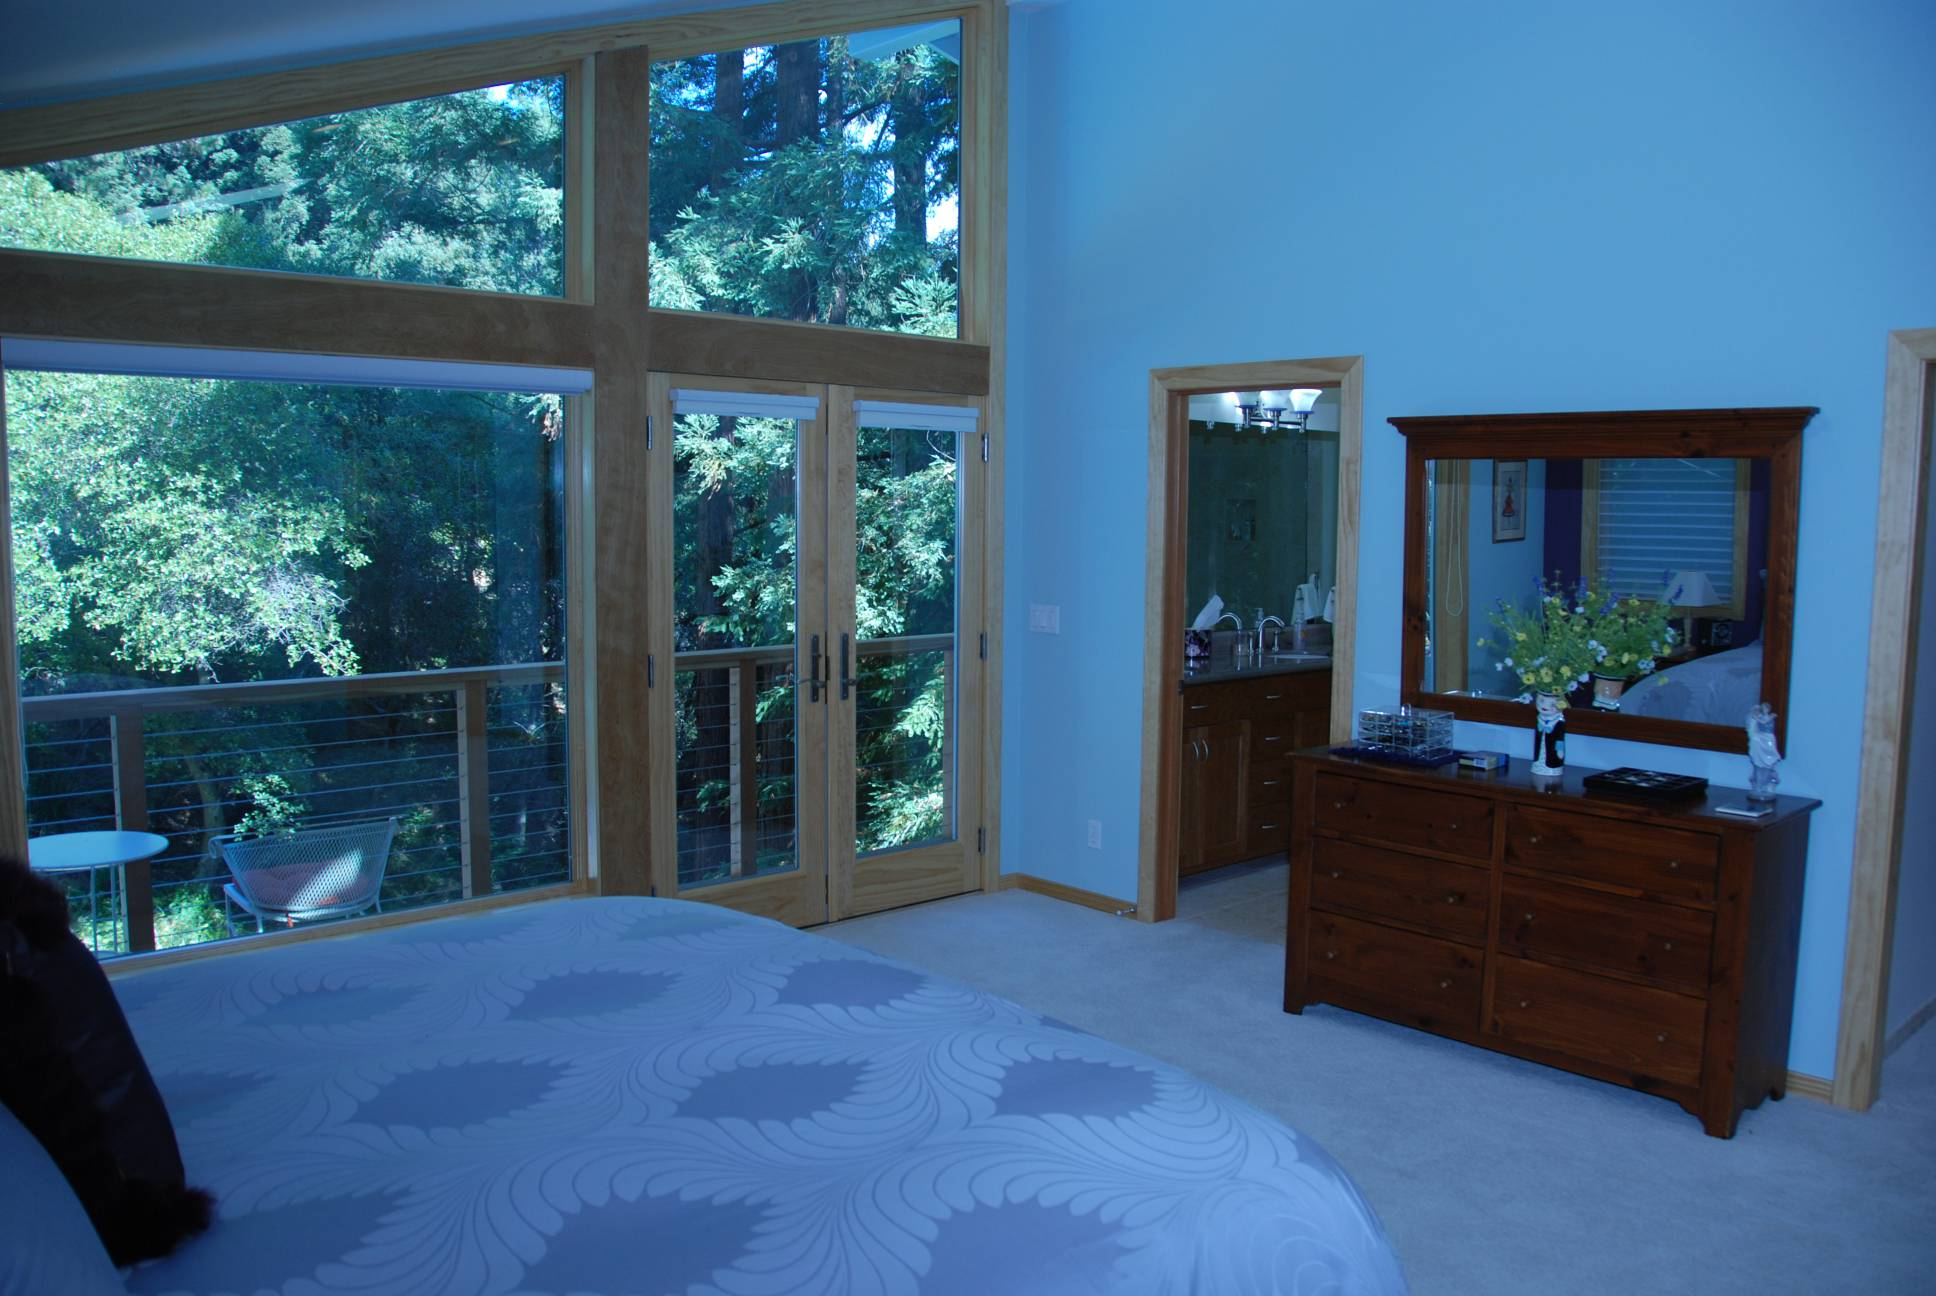 Master Bedroom View, Architect design, interior design work, Woodside